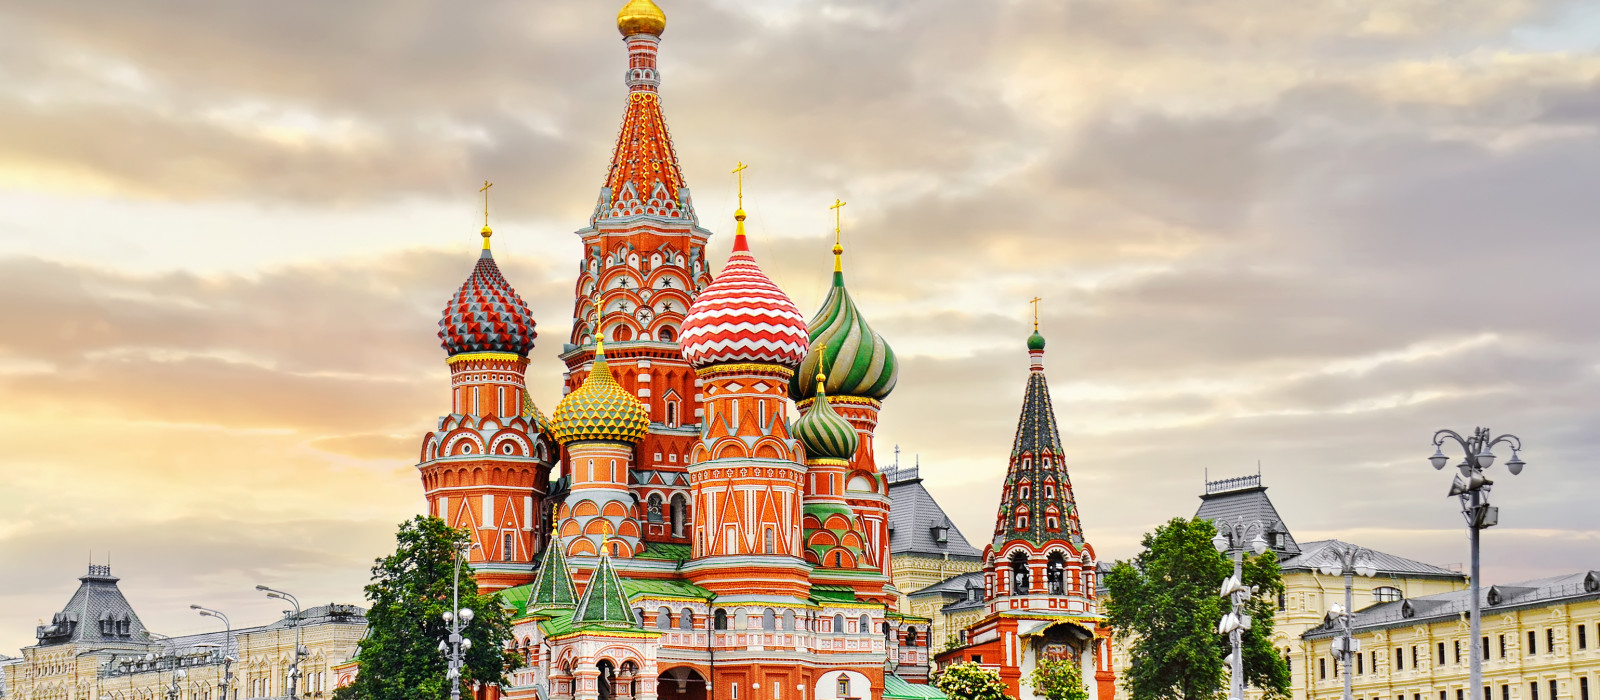 St Basil's in Moscow